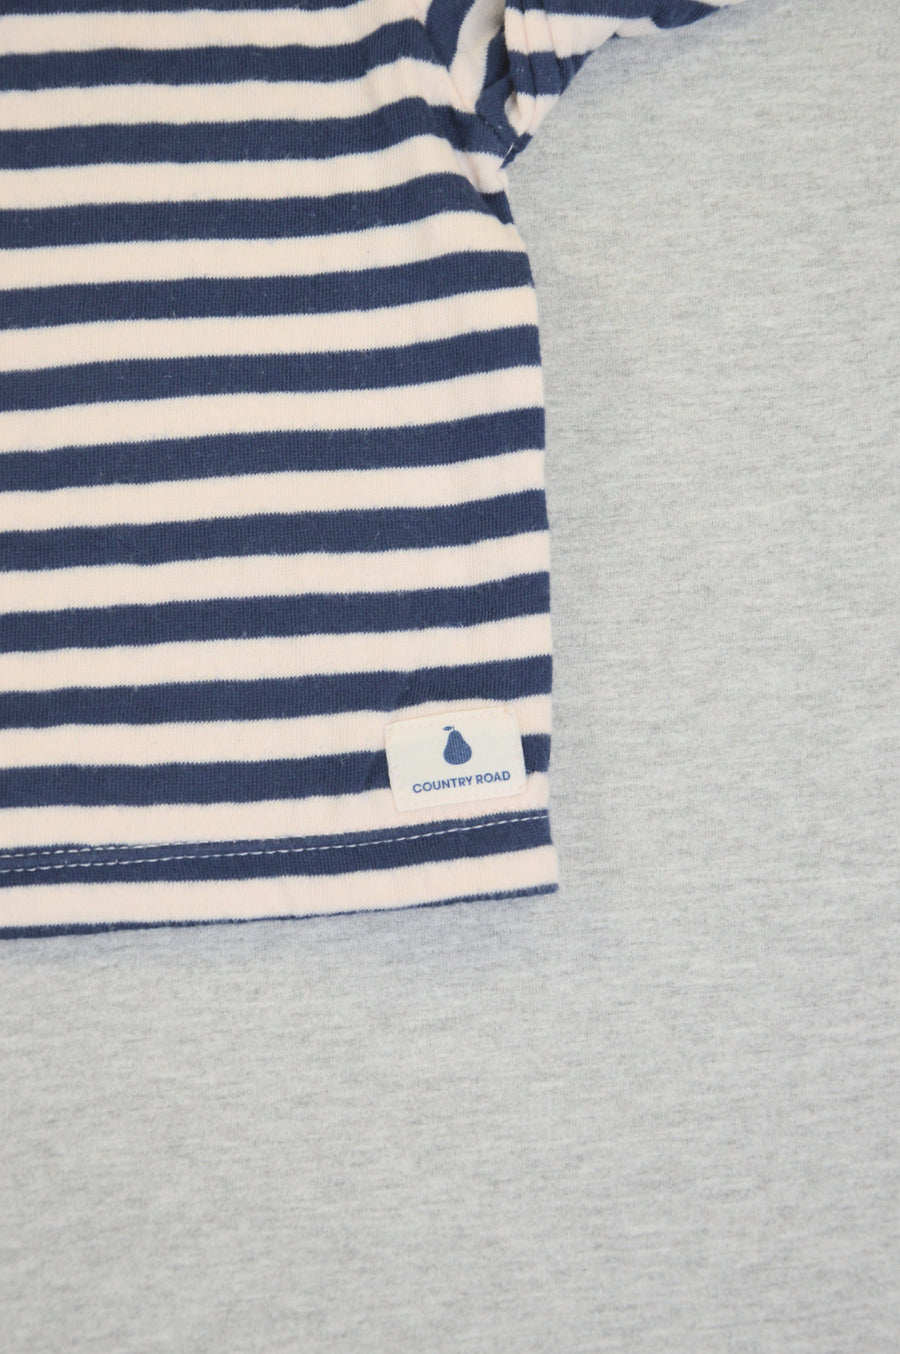 Country Road - nearly new - blue & cream striped thermal t-shirt, size 0-3m